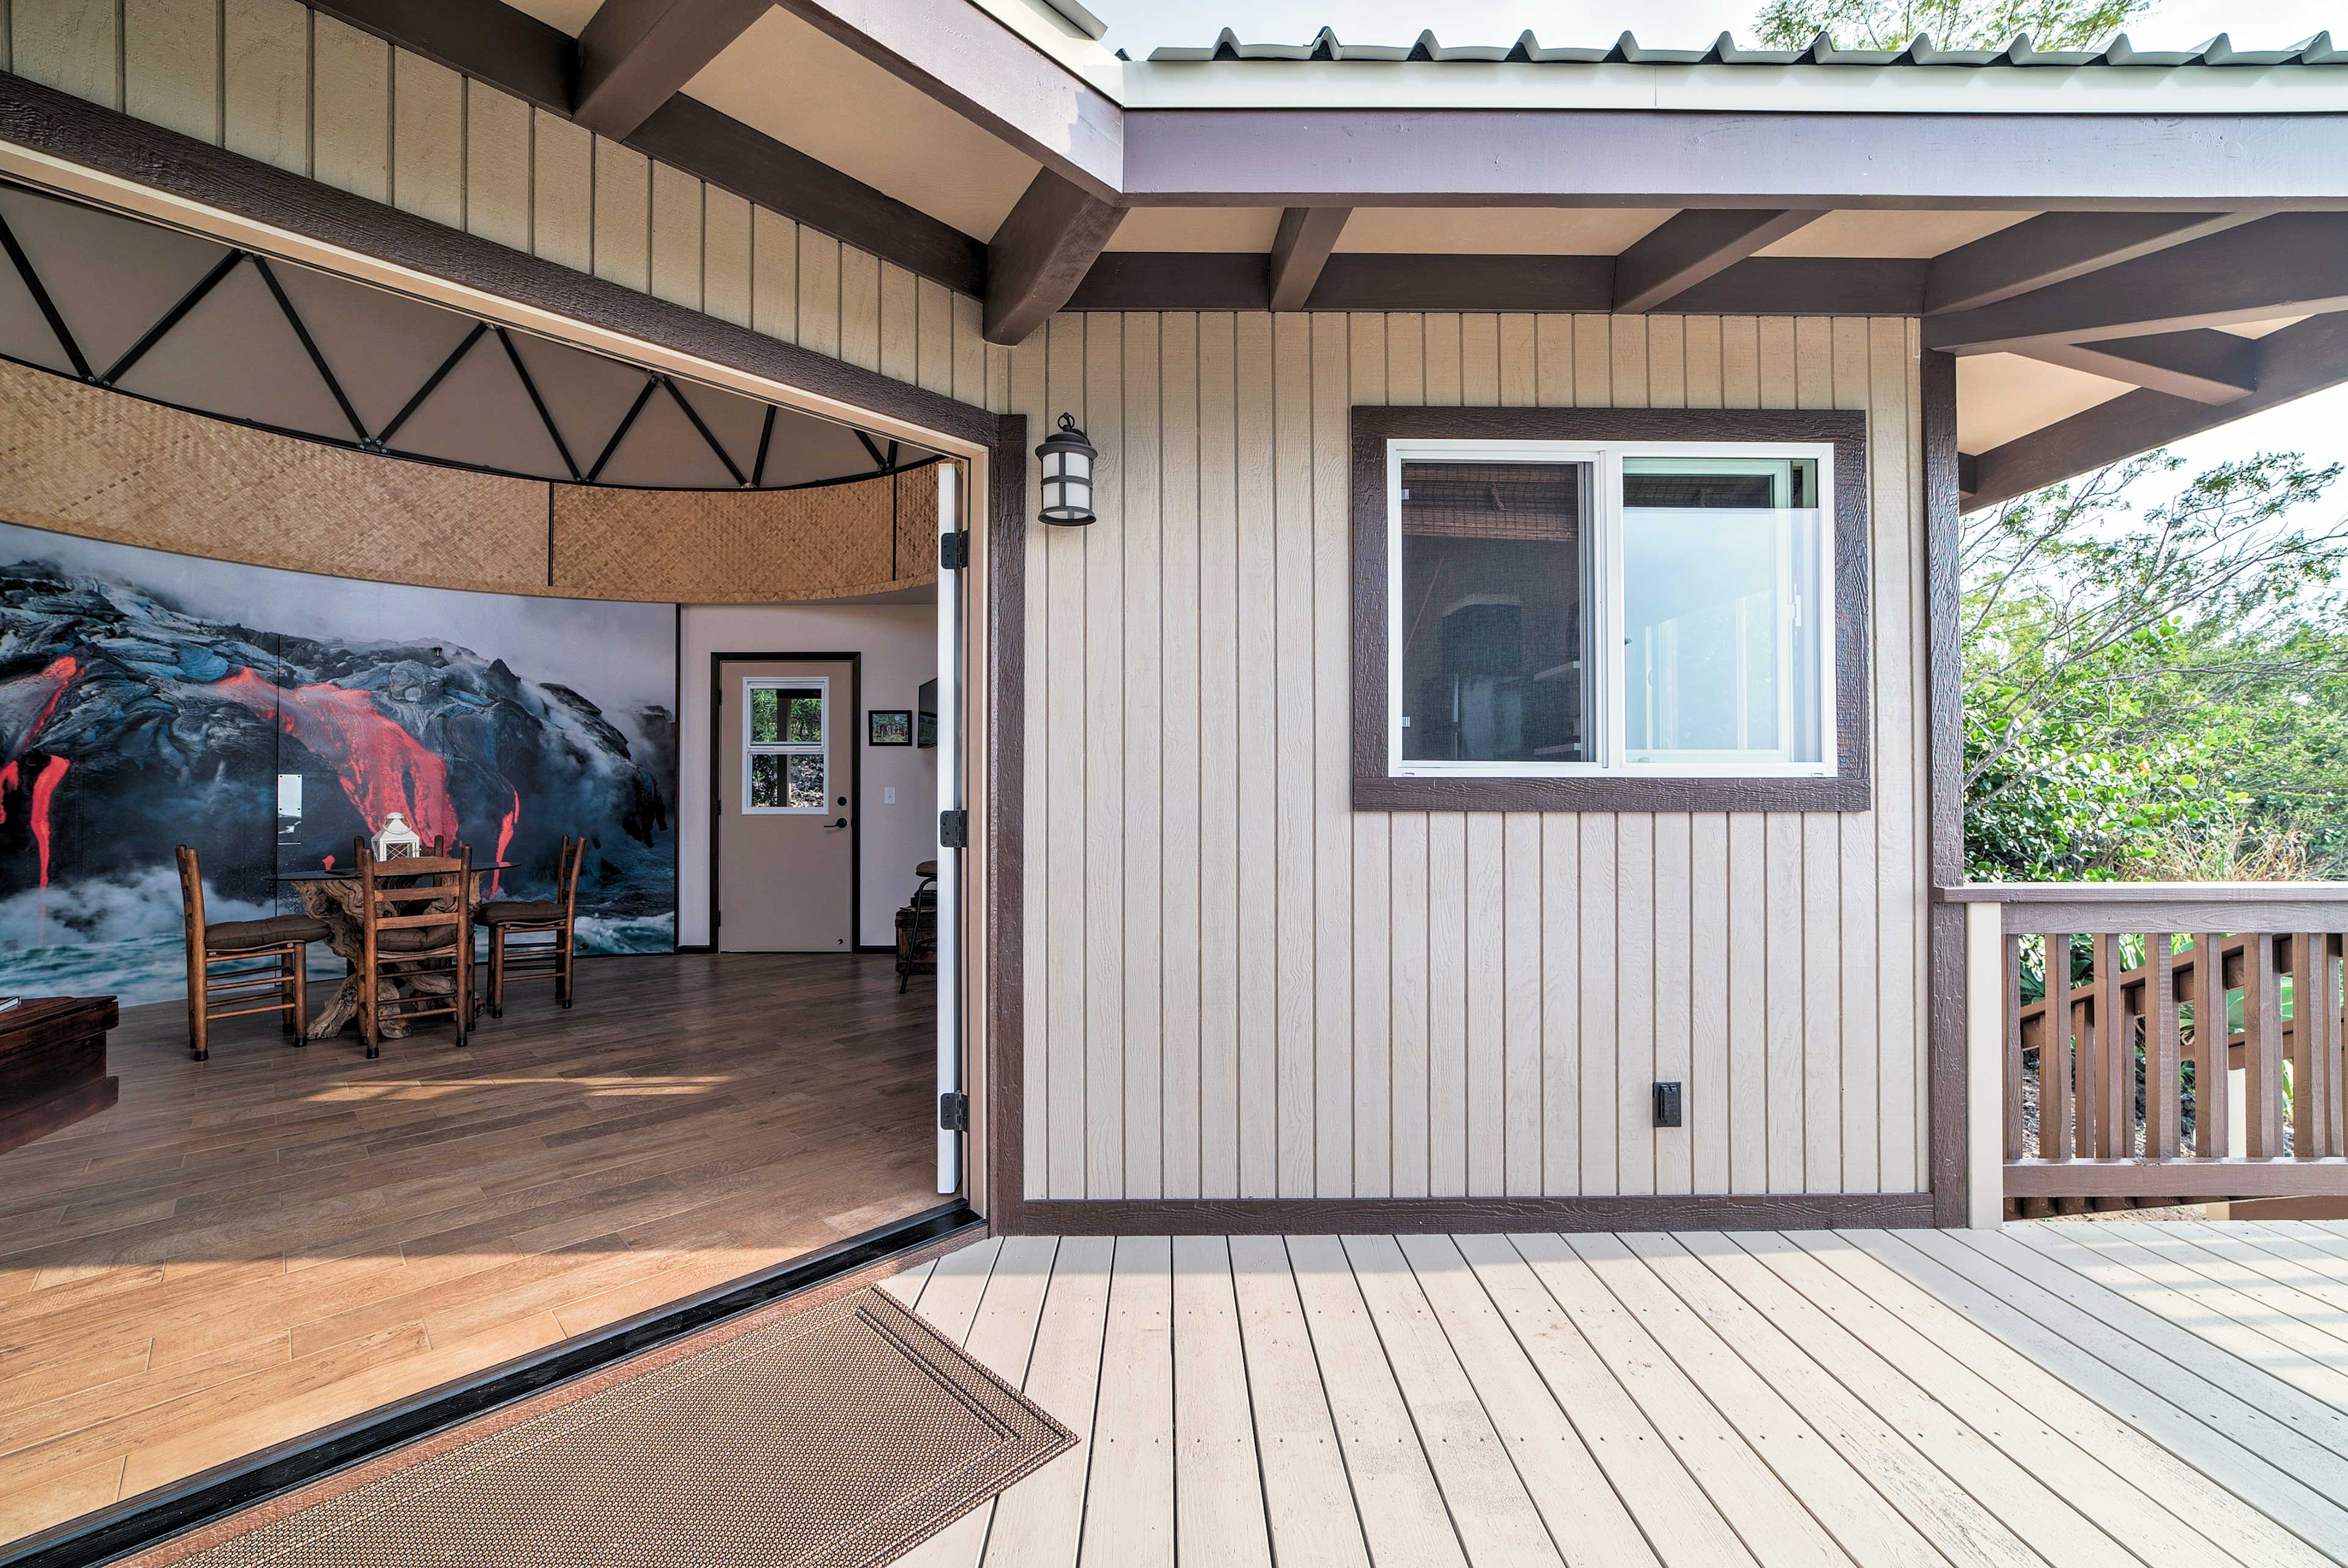 Let the outdoors in with the spacious doorway to the patio!